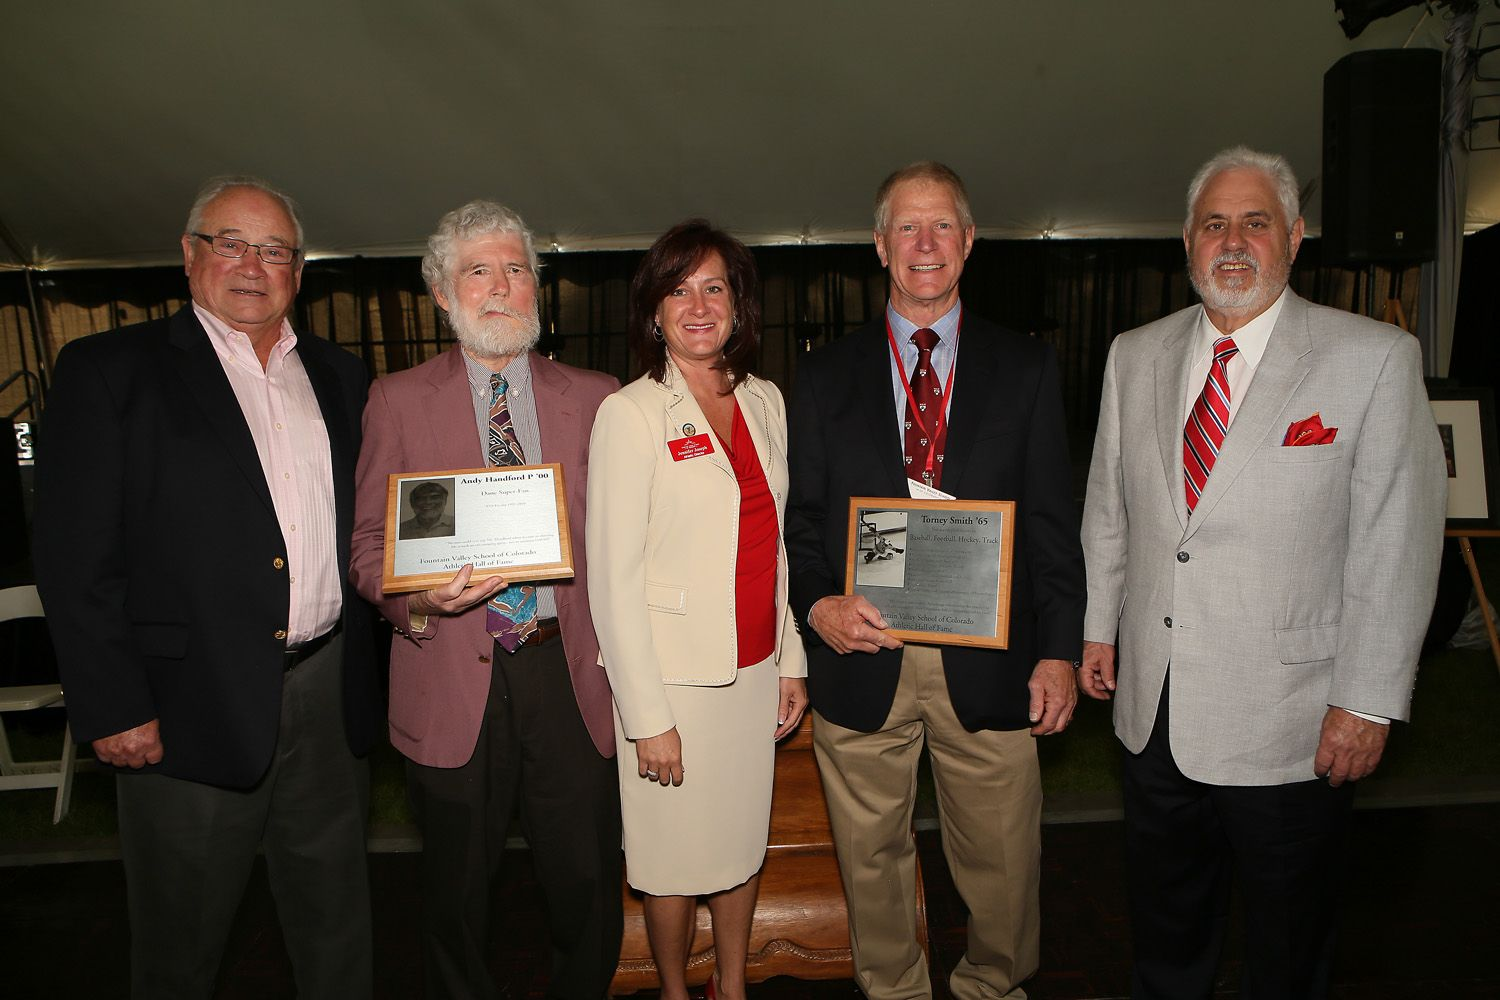 Former Faculty John Fuller, 2015 inductee Andy Handford P'00, Athletic Director Jen Joseph, 2015 inductee Torney Smith '65 and Norm Jones '62